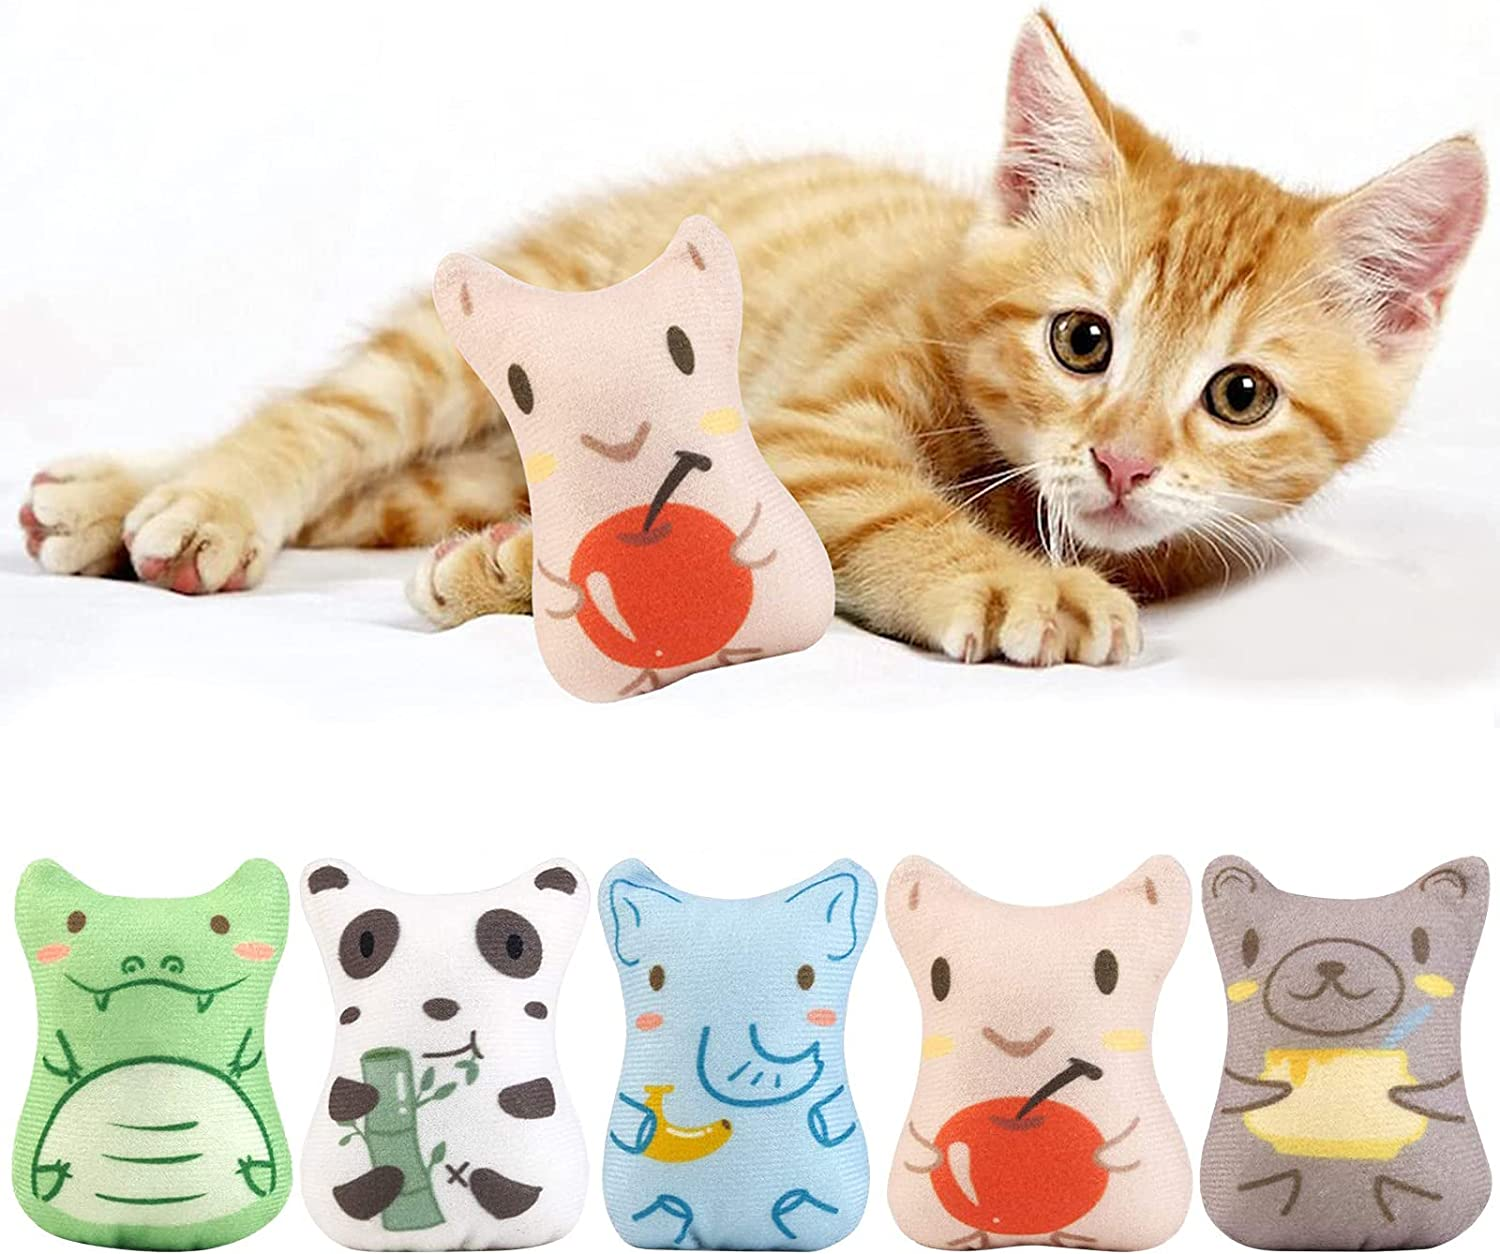 Holiday Tails All stores are sold Catnip Toys for Fixed price sale Cats Chew Toy Plush 5PCS - Cat